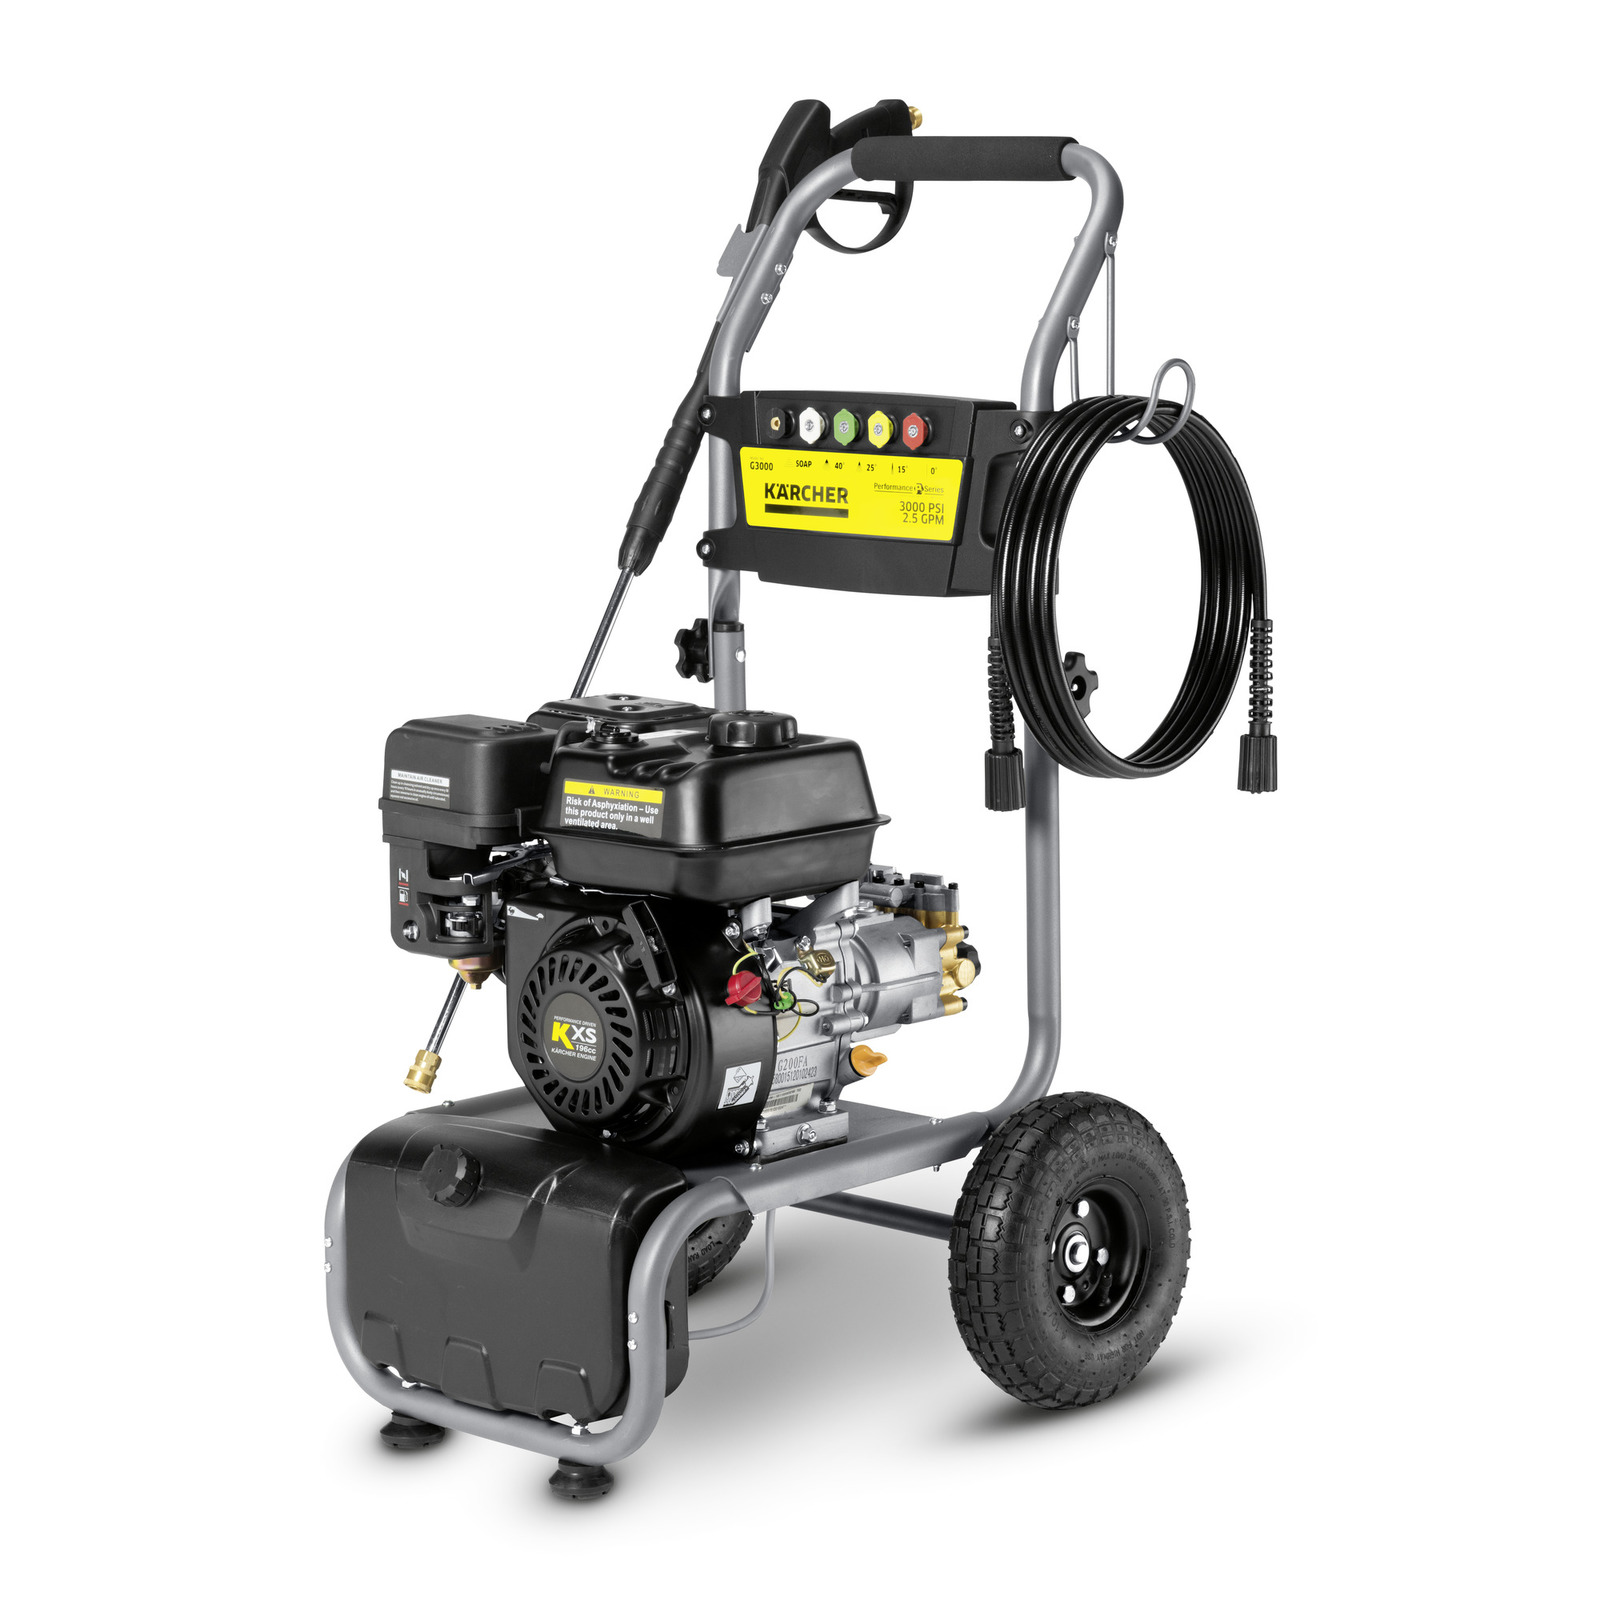 G 3000 11072800 Https Www Kaercher Us Home Garden Gas Pressure Washers Html Karcher S Features A 196cc Kxs Engine And Axial Cam